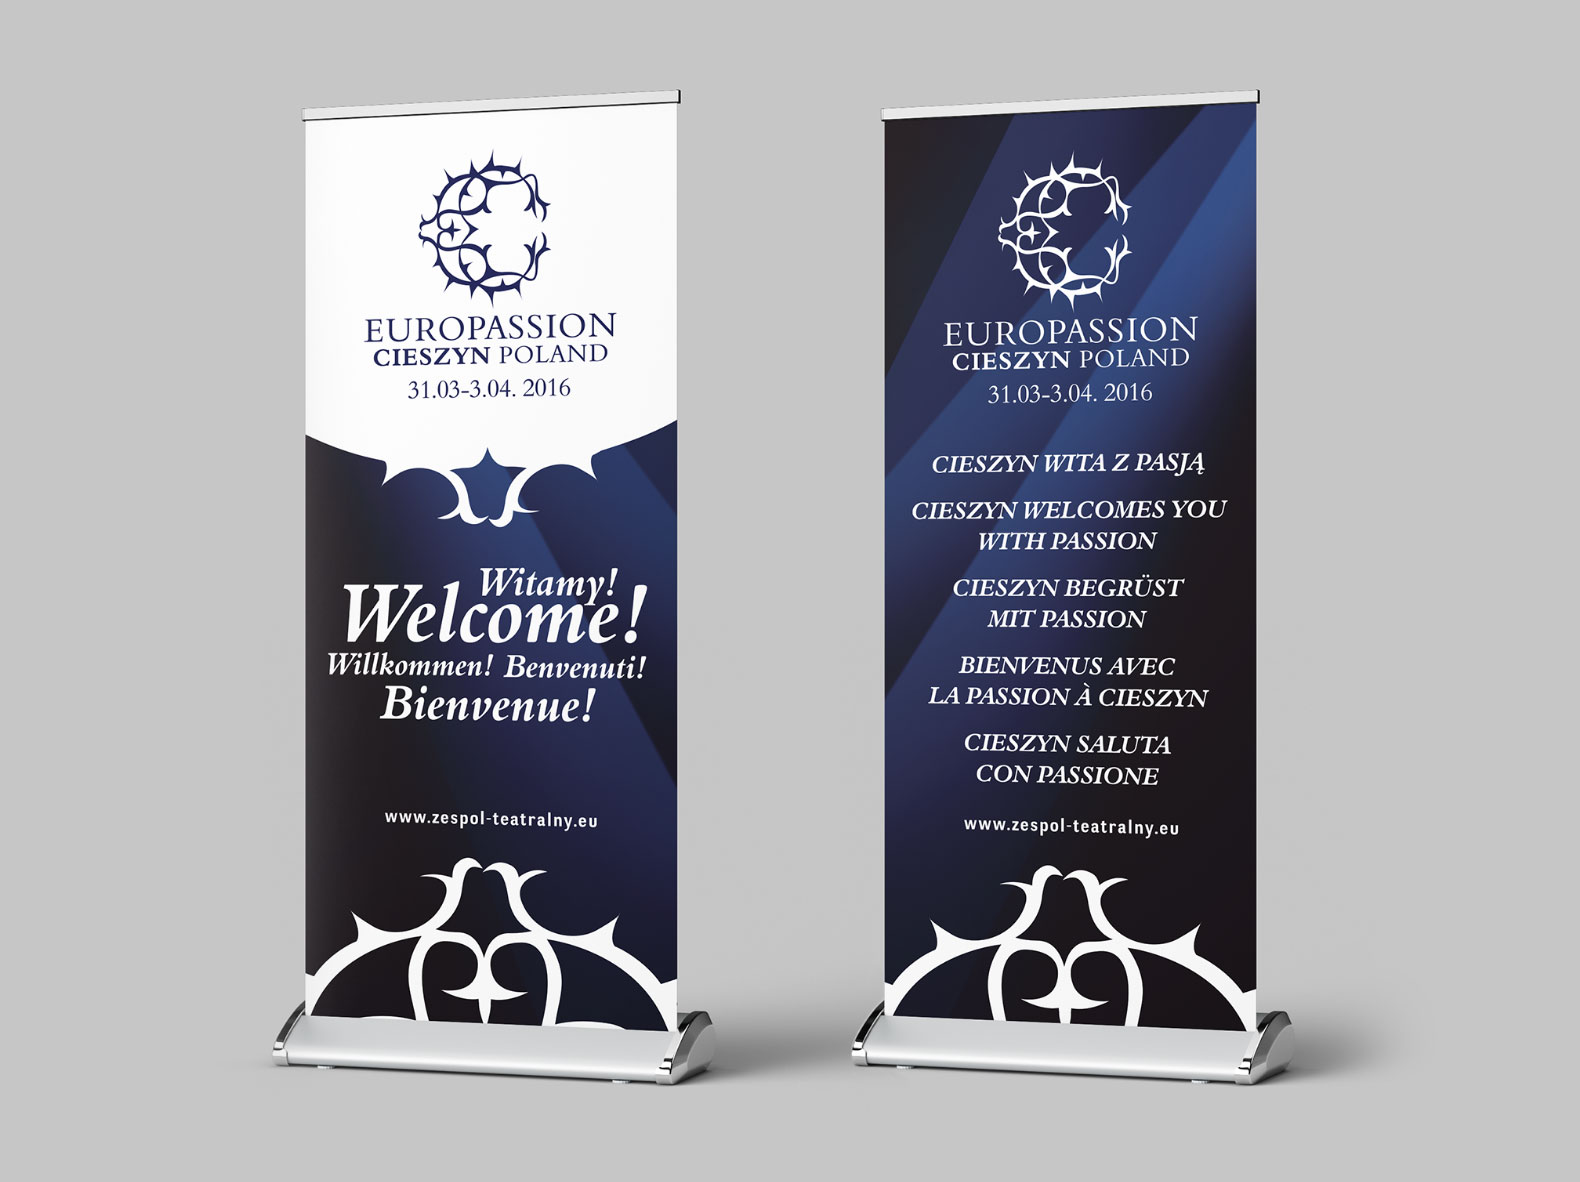 roll-up 85x200 Europasja